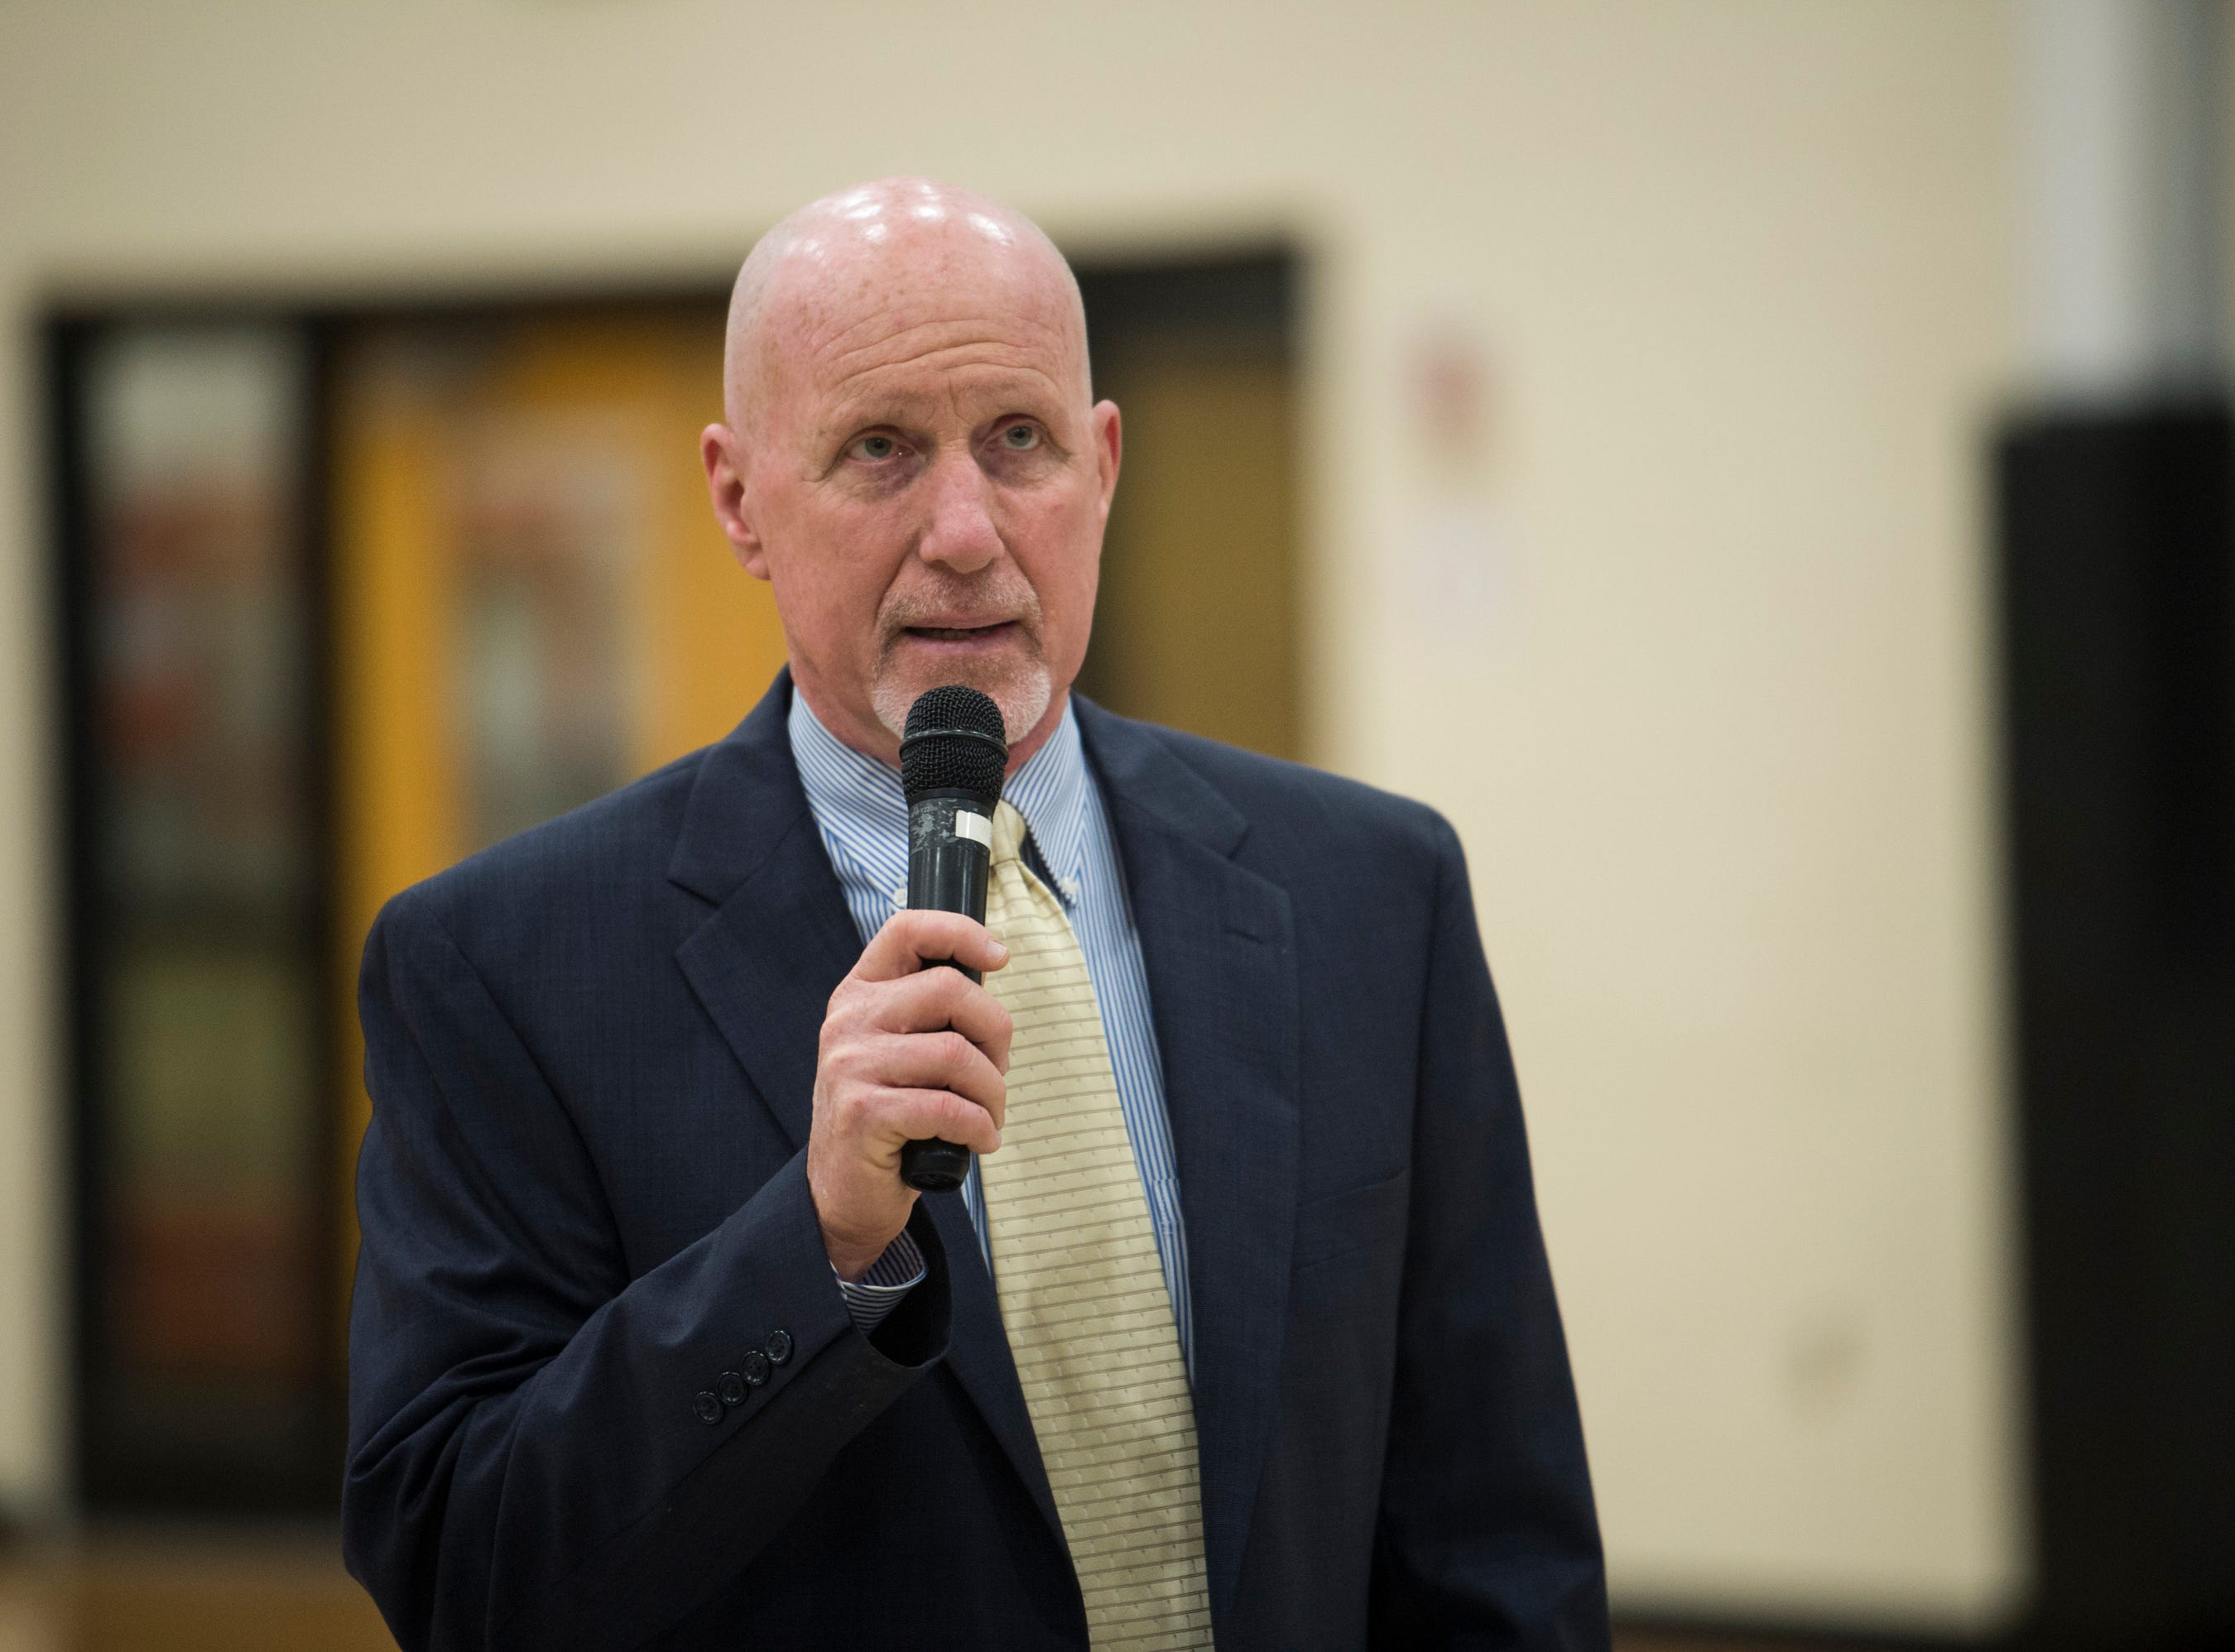 Wetumpka head coach Tim Perry speaks during signing day at Wetumpka High School in Wetumpka, Ala., on Wednesday, Feb. 6, 2019.